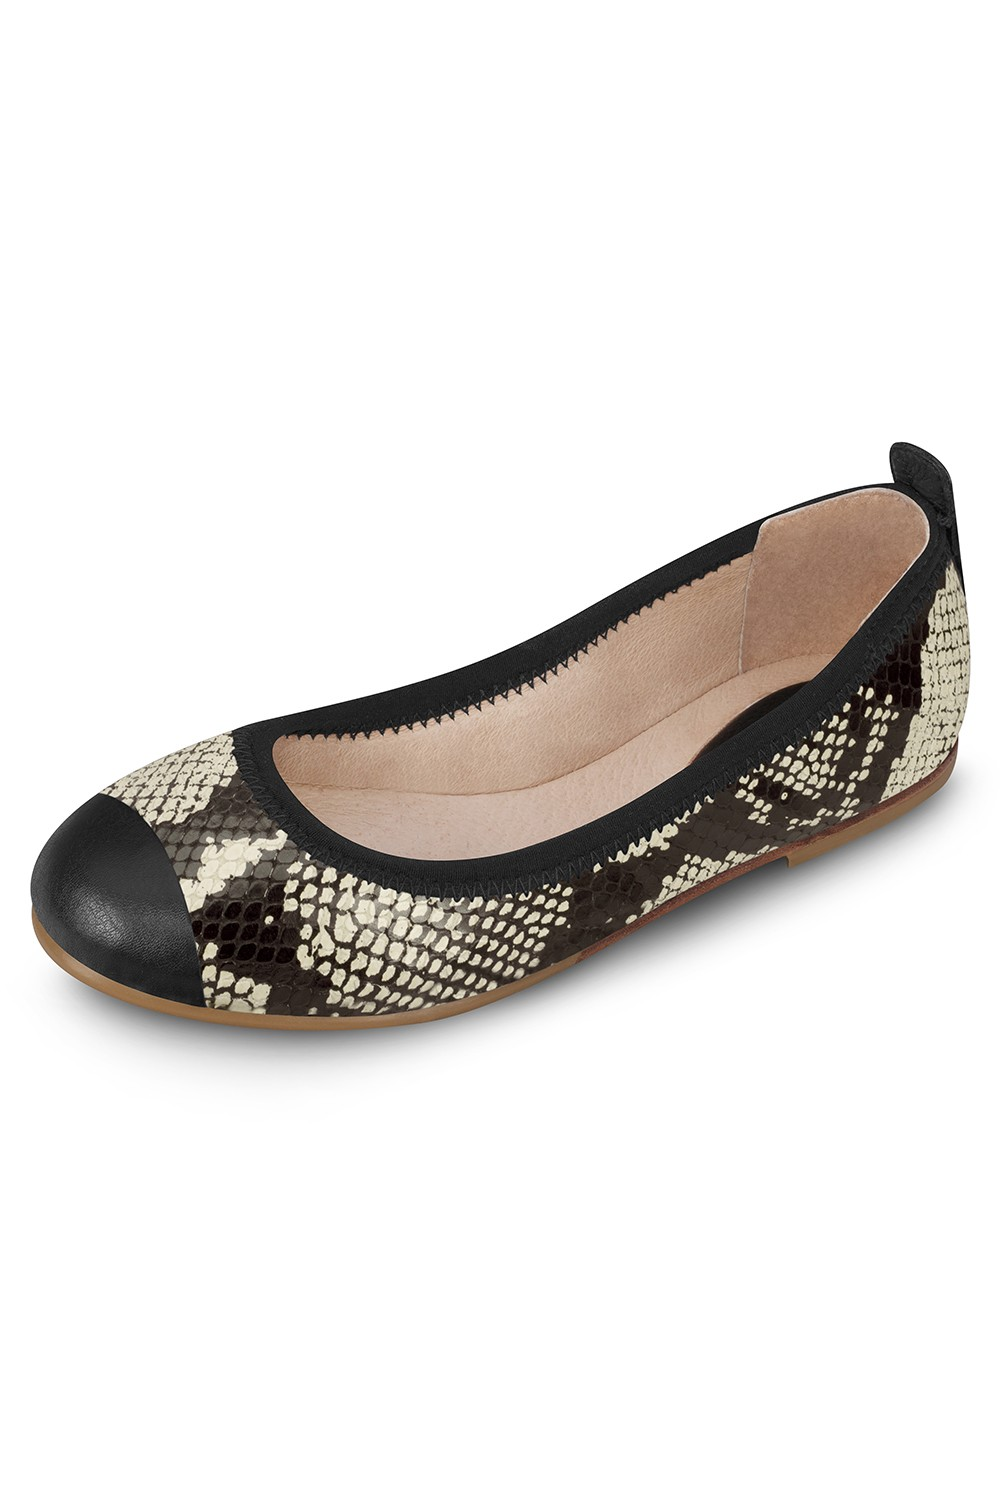 Carina Leather Outsole Girls Fashion Shoes